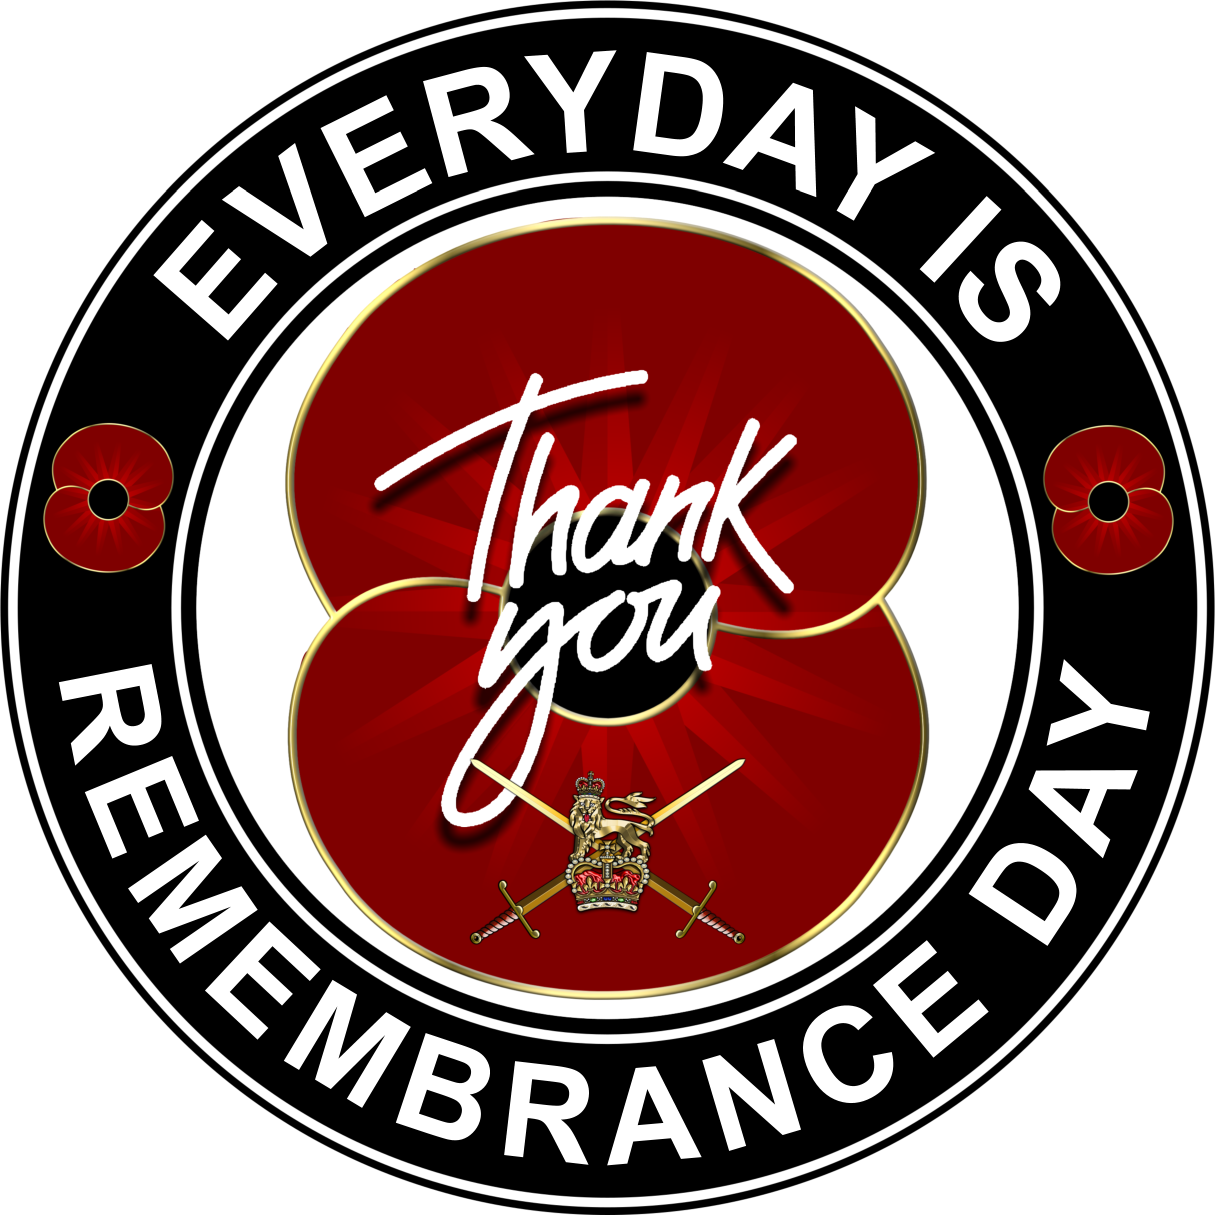 Pin by Alan Gore on Remembrance Military. Remembrance